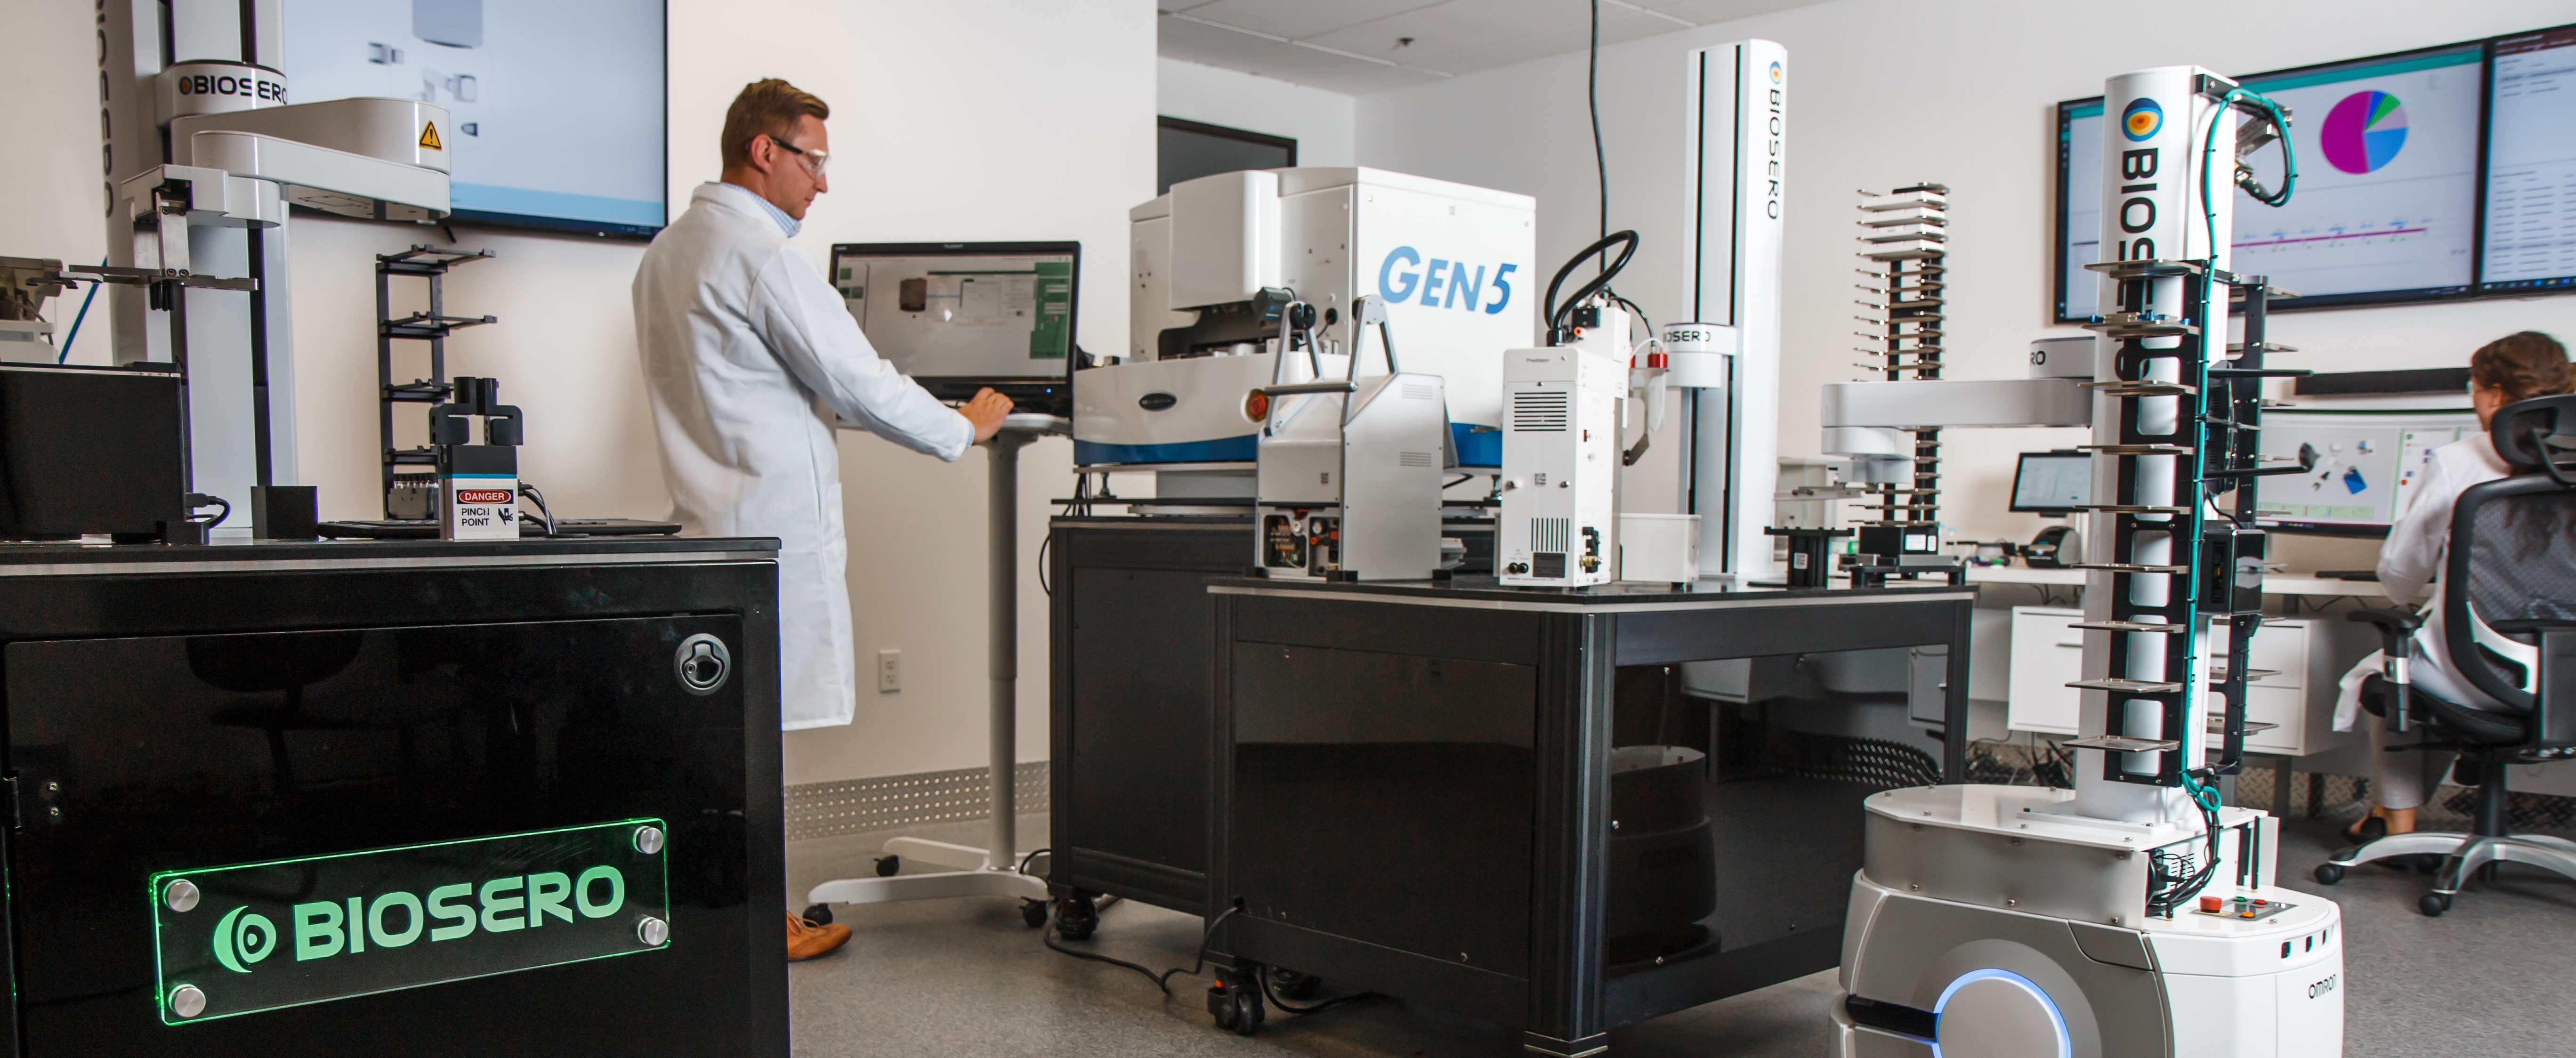 Biosero Acceleration Lab Demonstrates Most-Advanced Lab Automation Experiences in Pharmaceutical, Life Science and Research